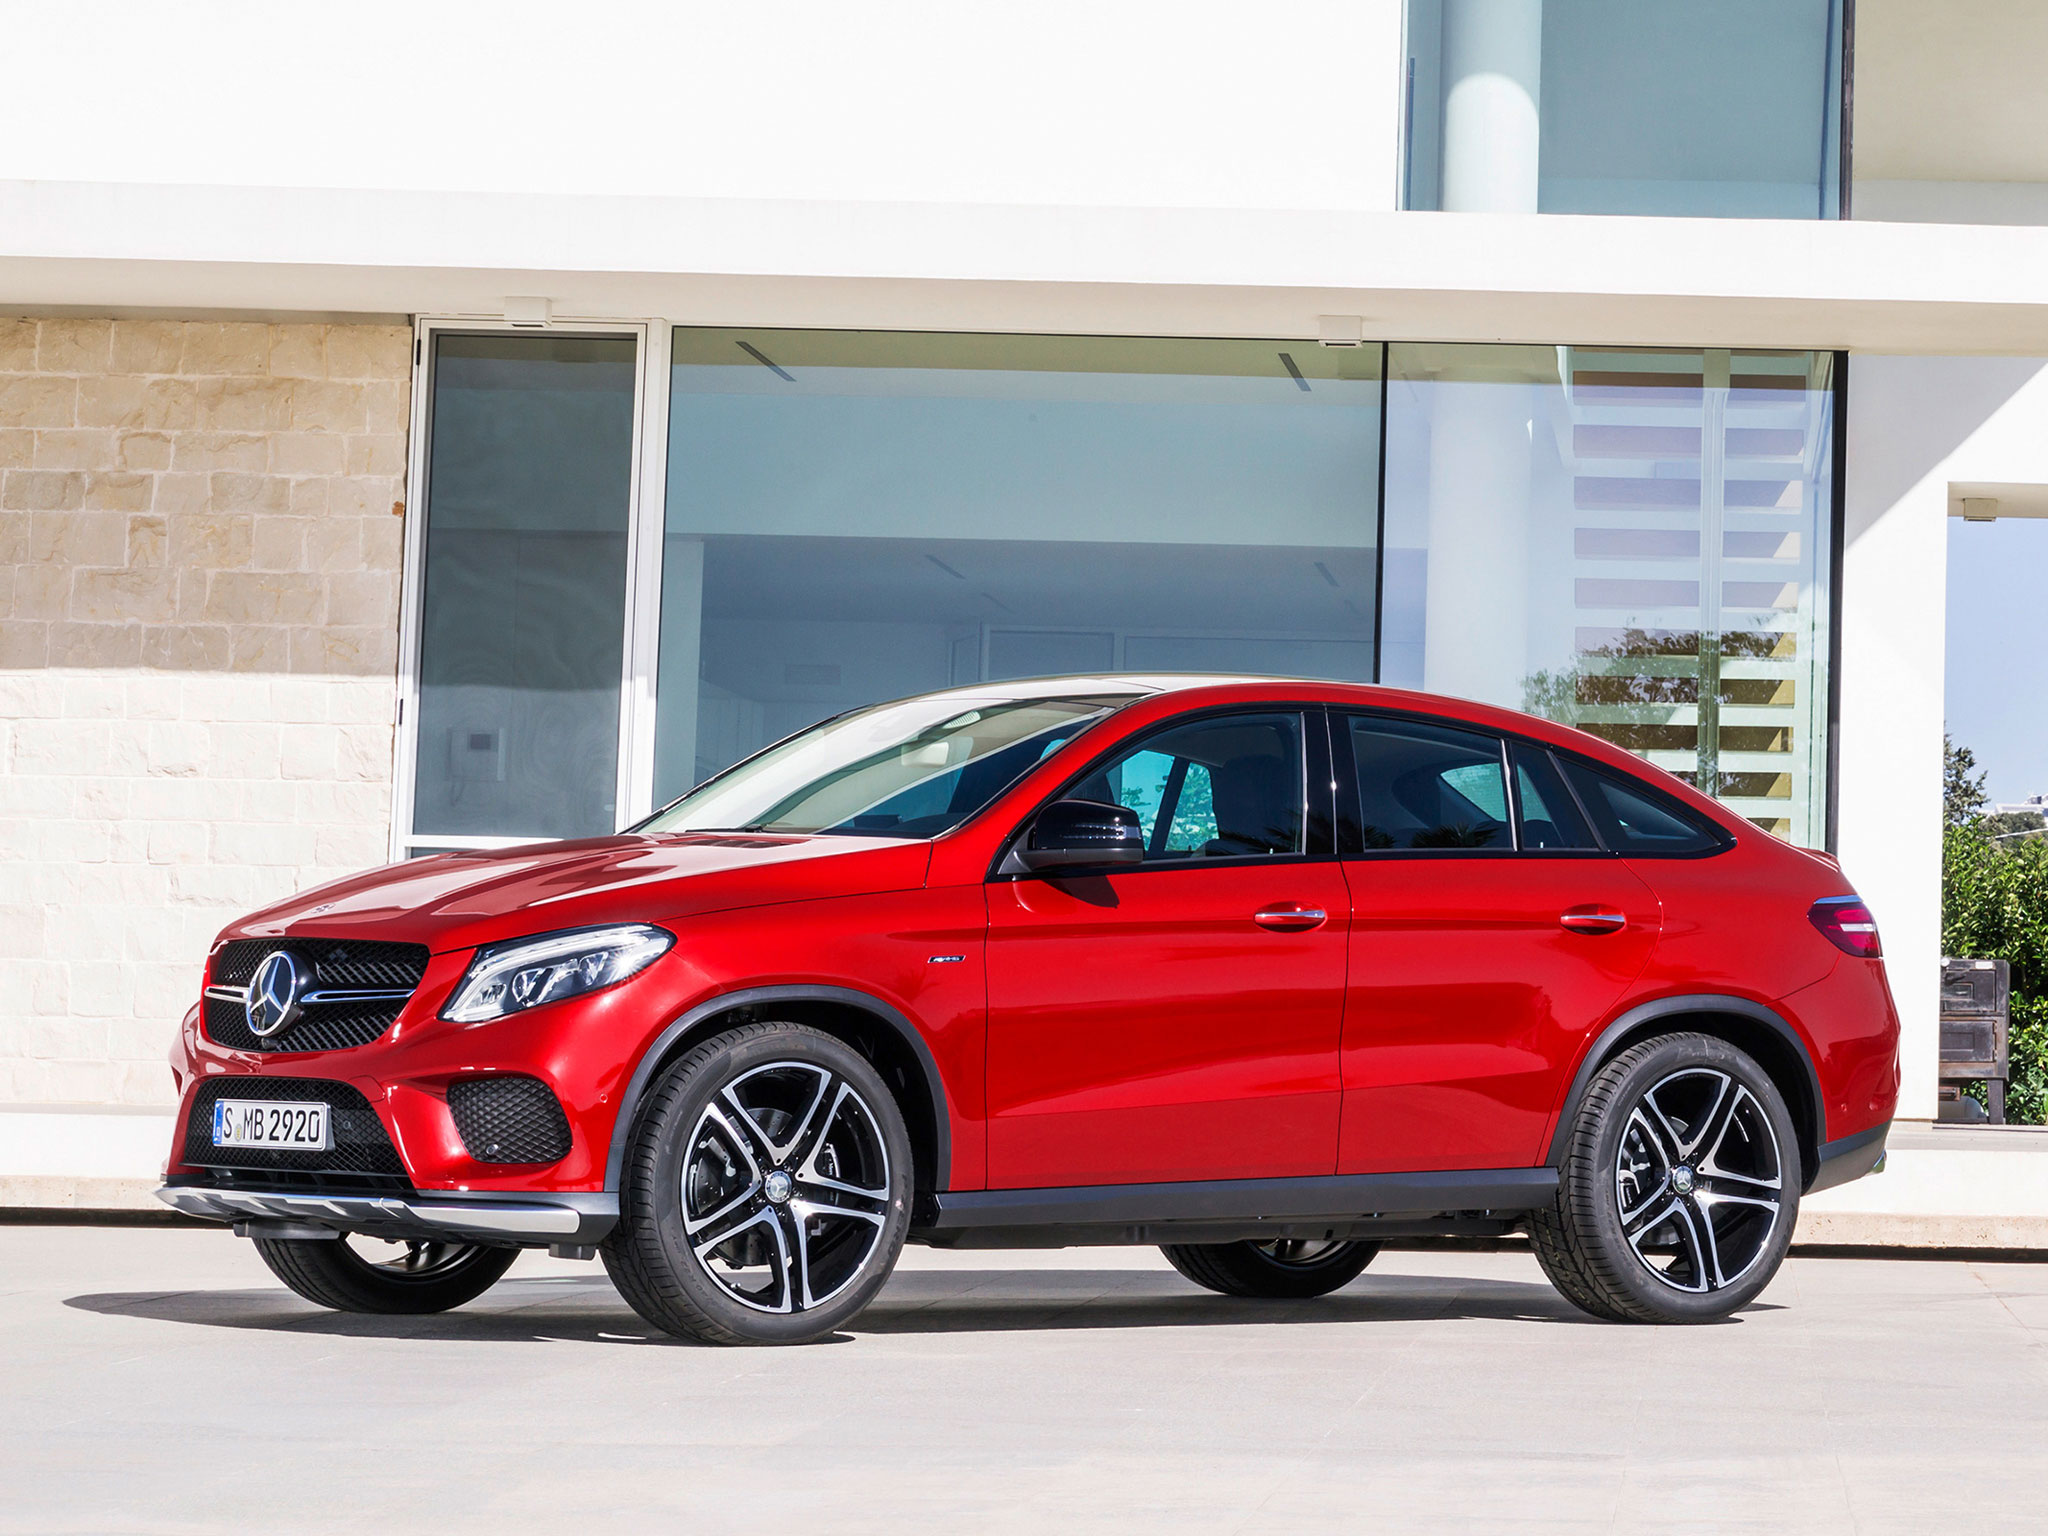 2016-GLE-CLASS-COUPE-FUTURE-GALLERY-008-WR-T.jpg